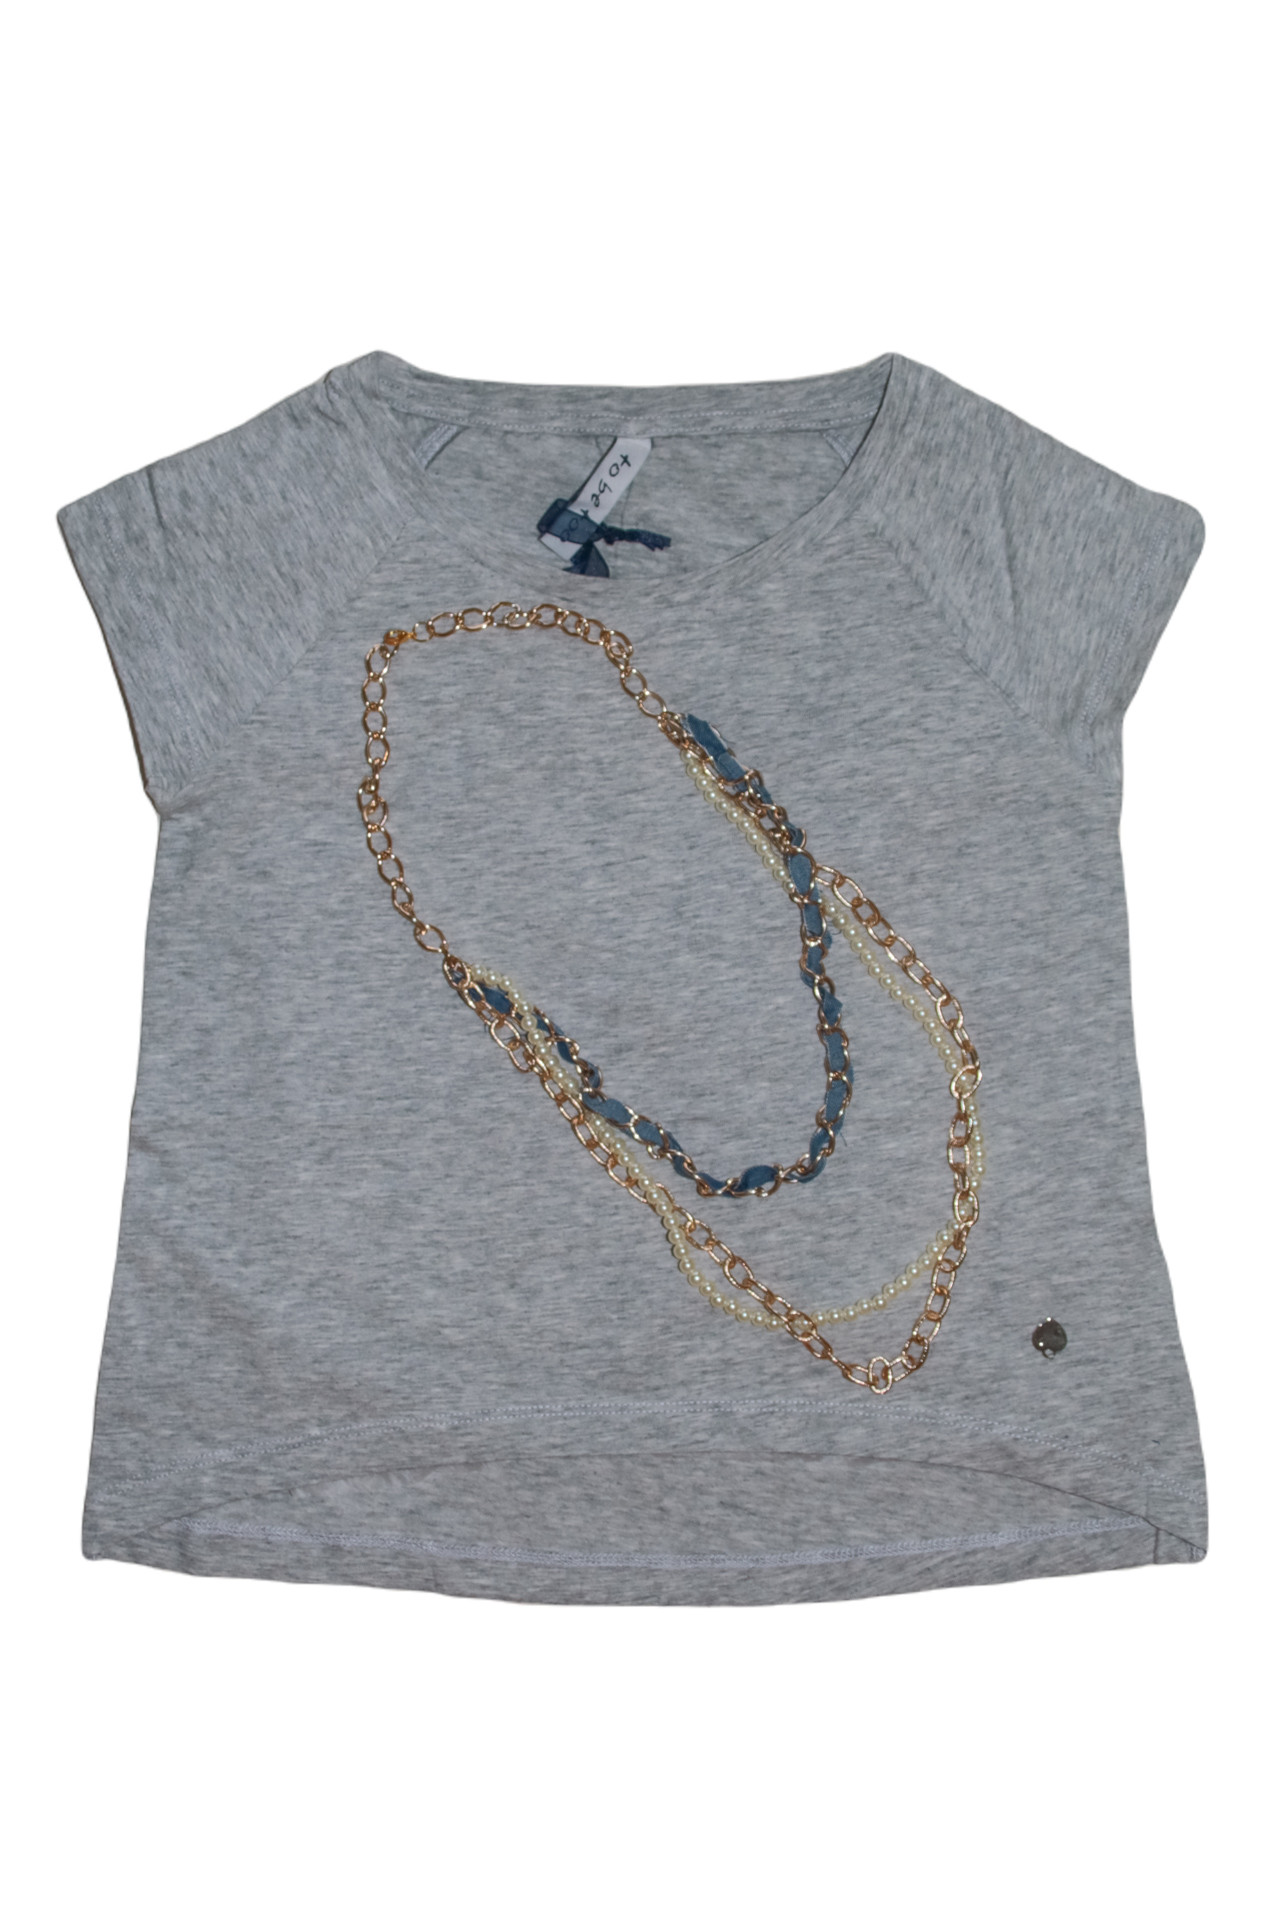 T-shirt with accessories - 1